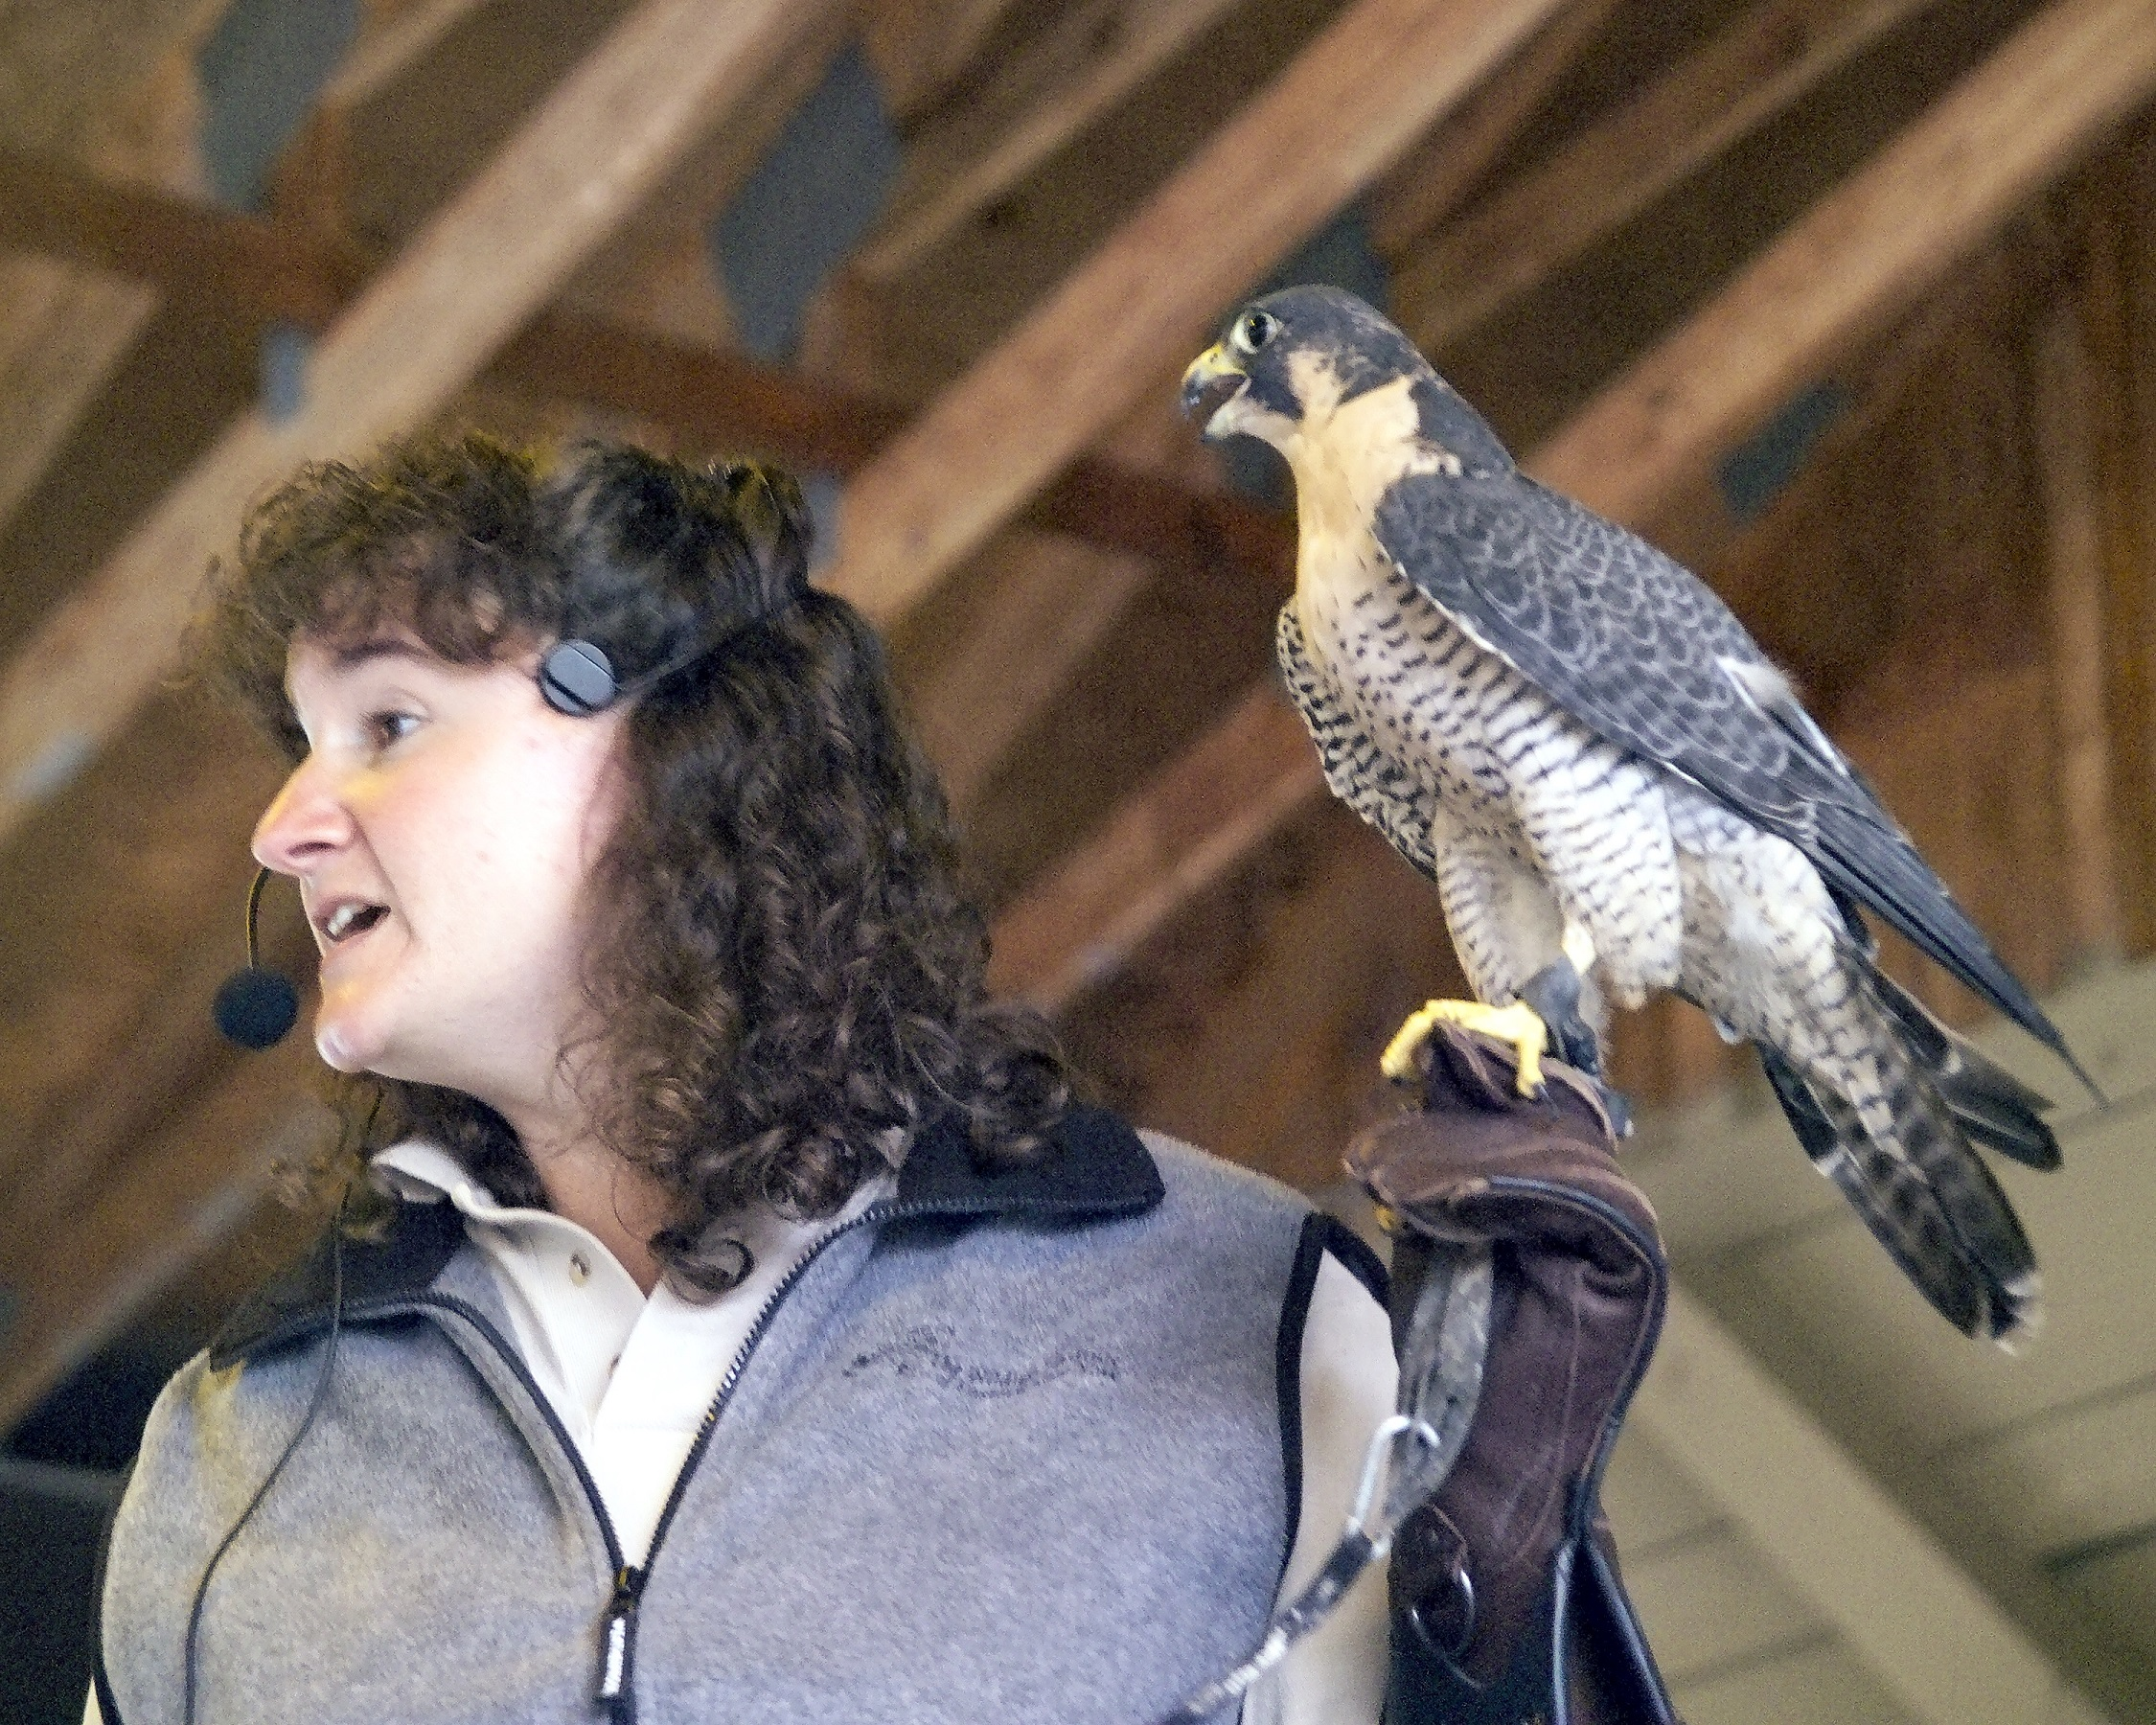 Beth Bidwell of Wild Things brings along birds of prey & reptiles